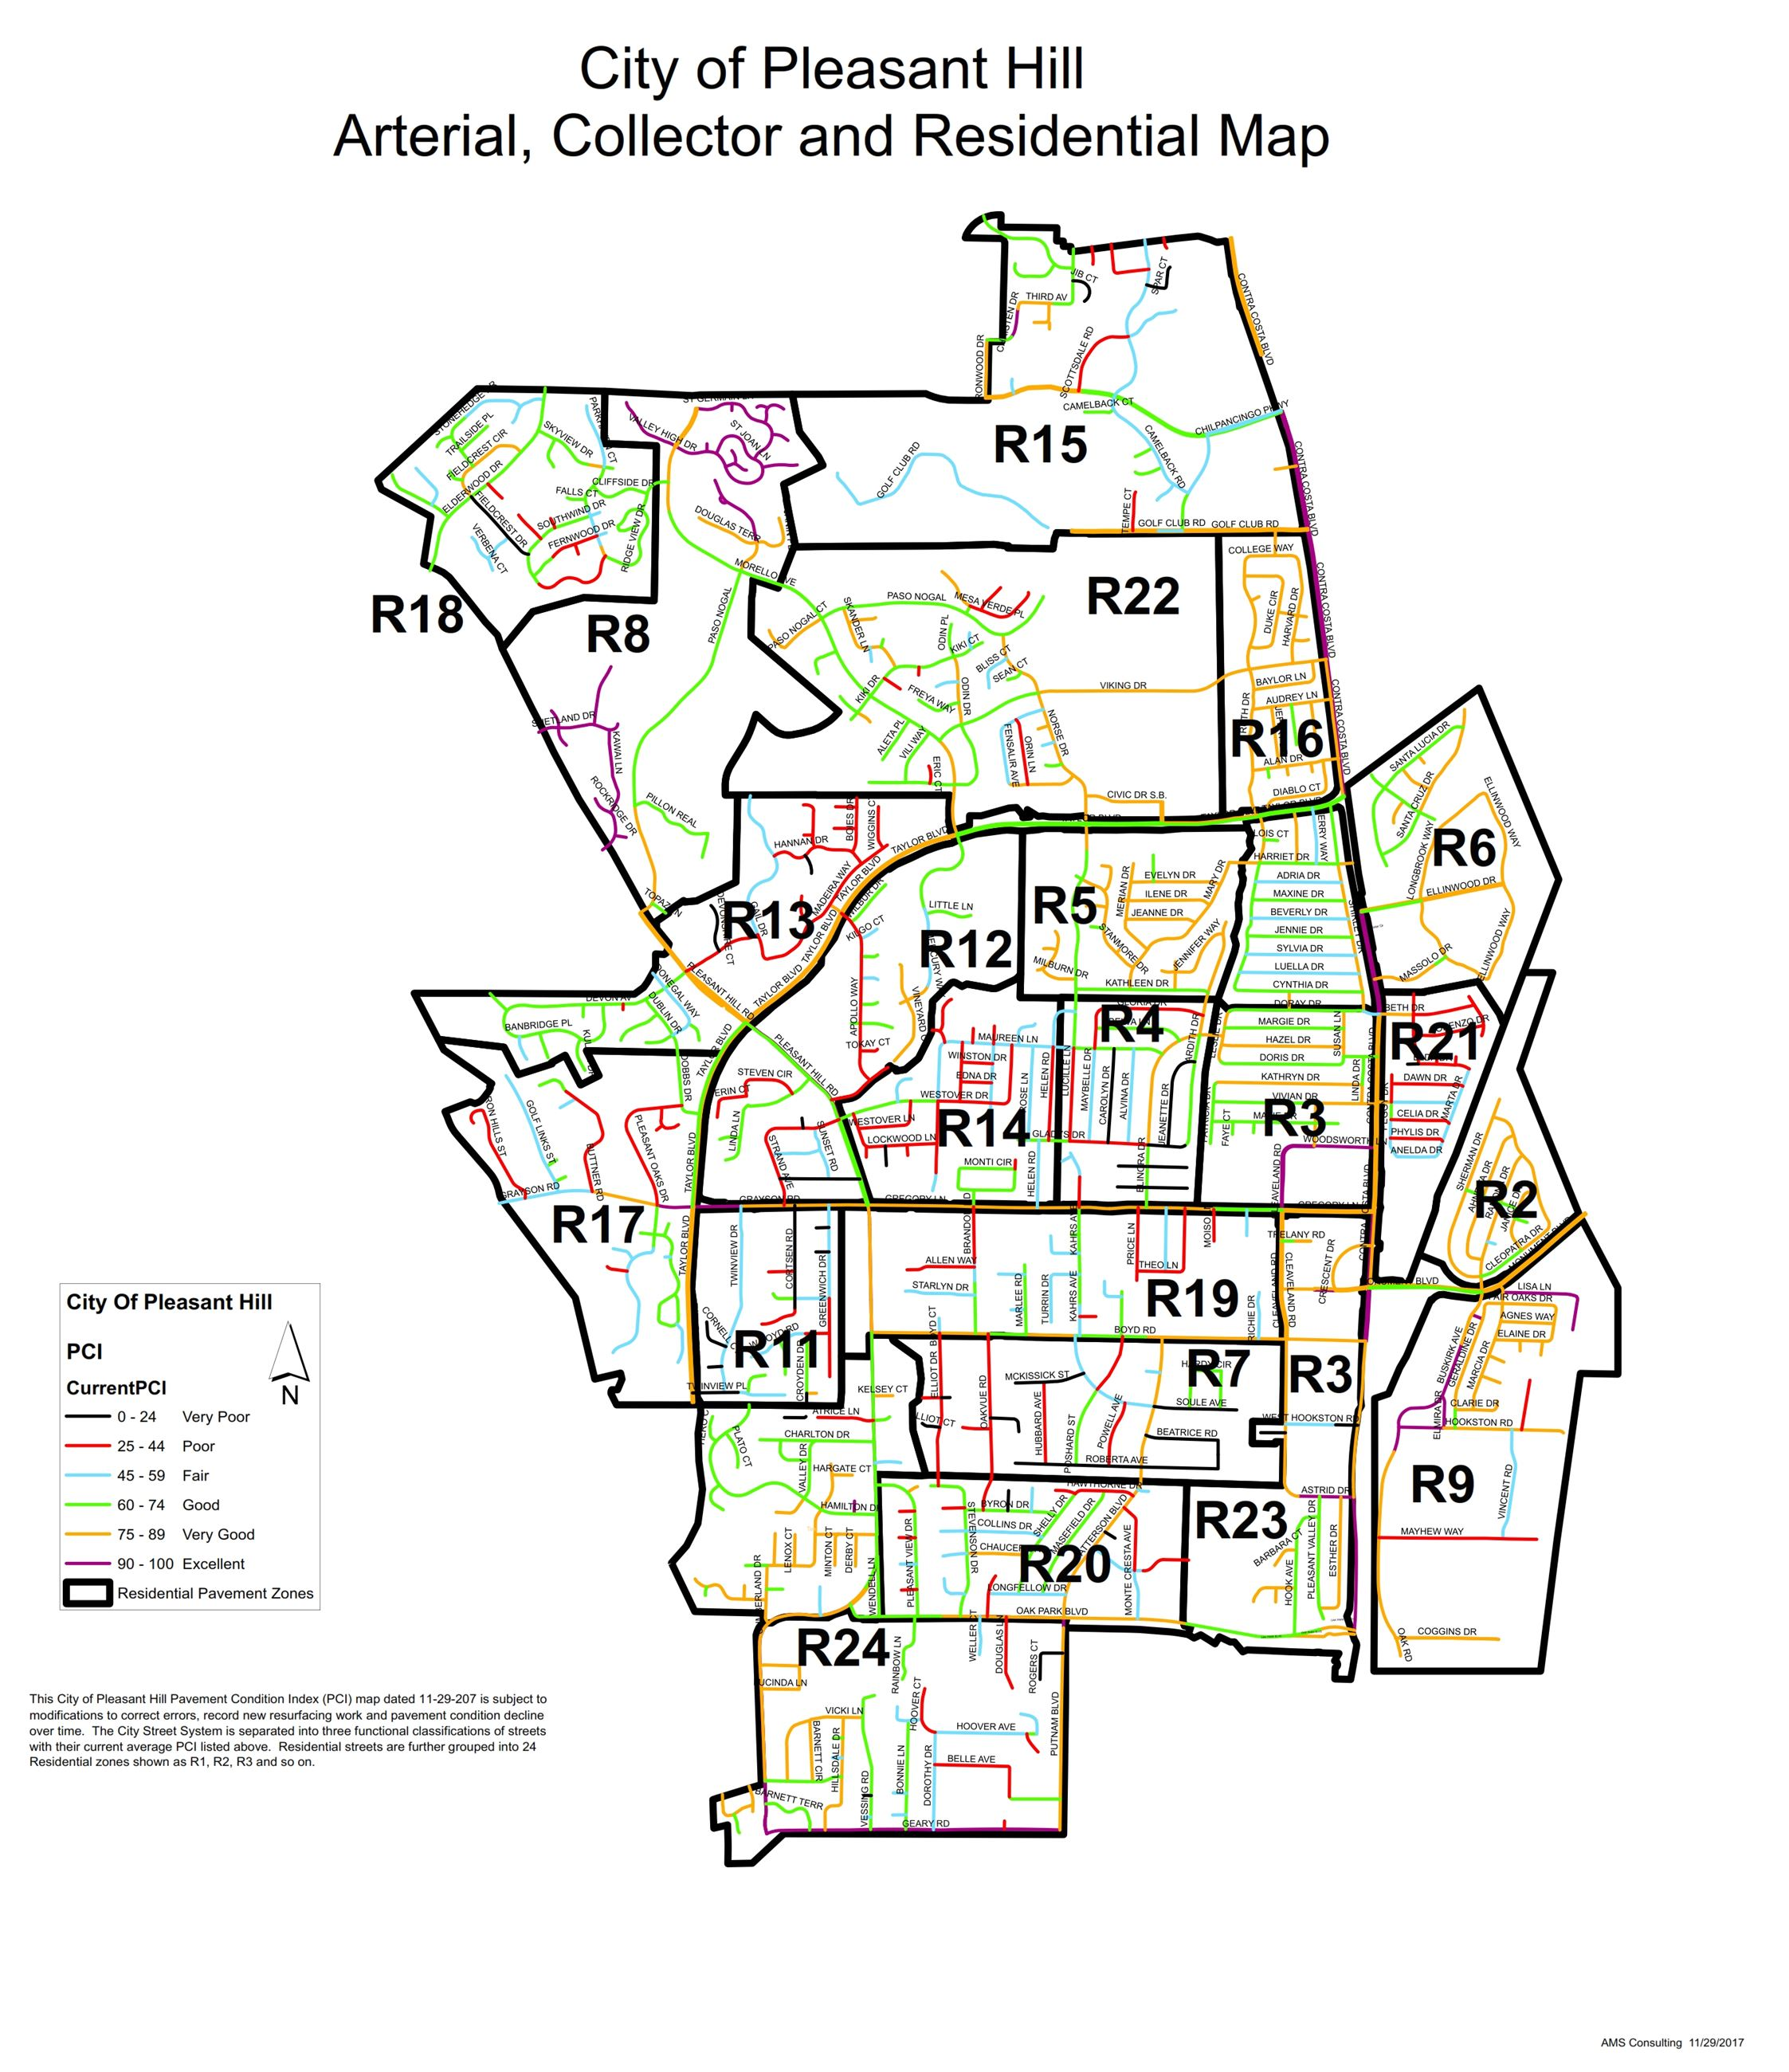 Artrial Collector and Residential Streets